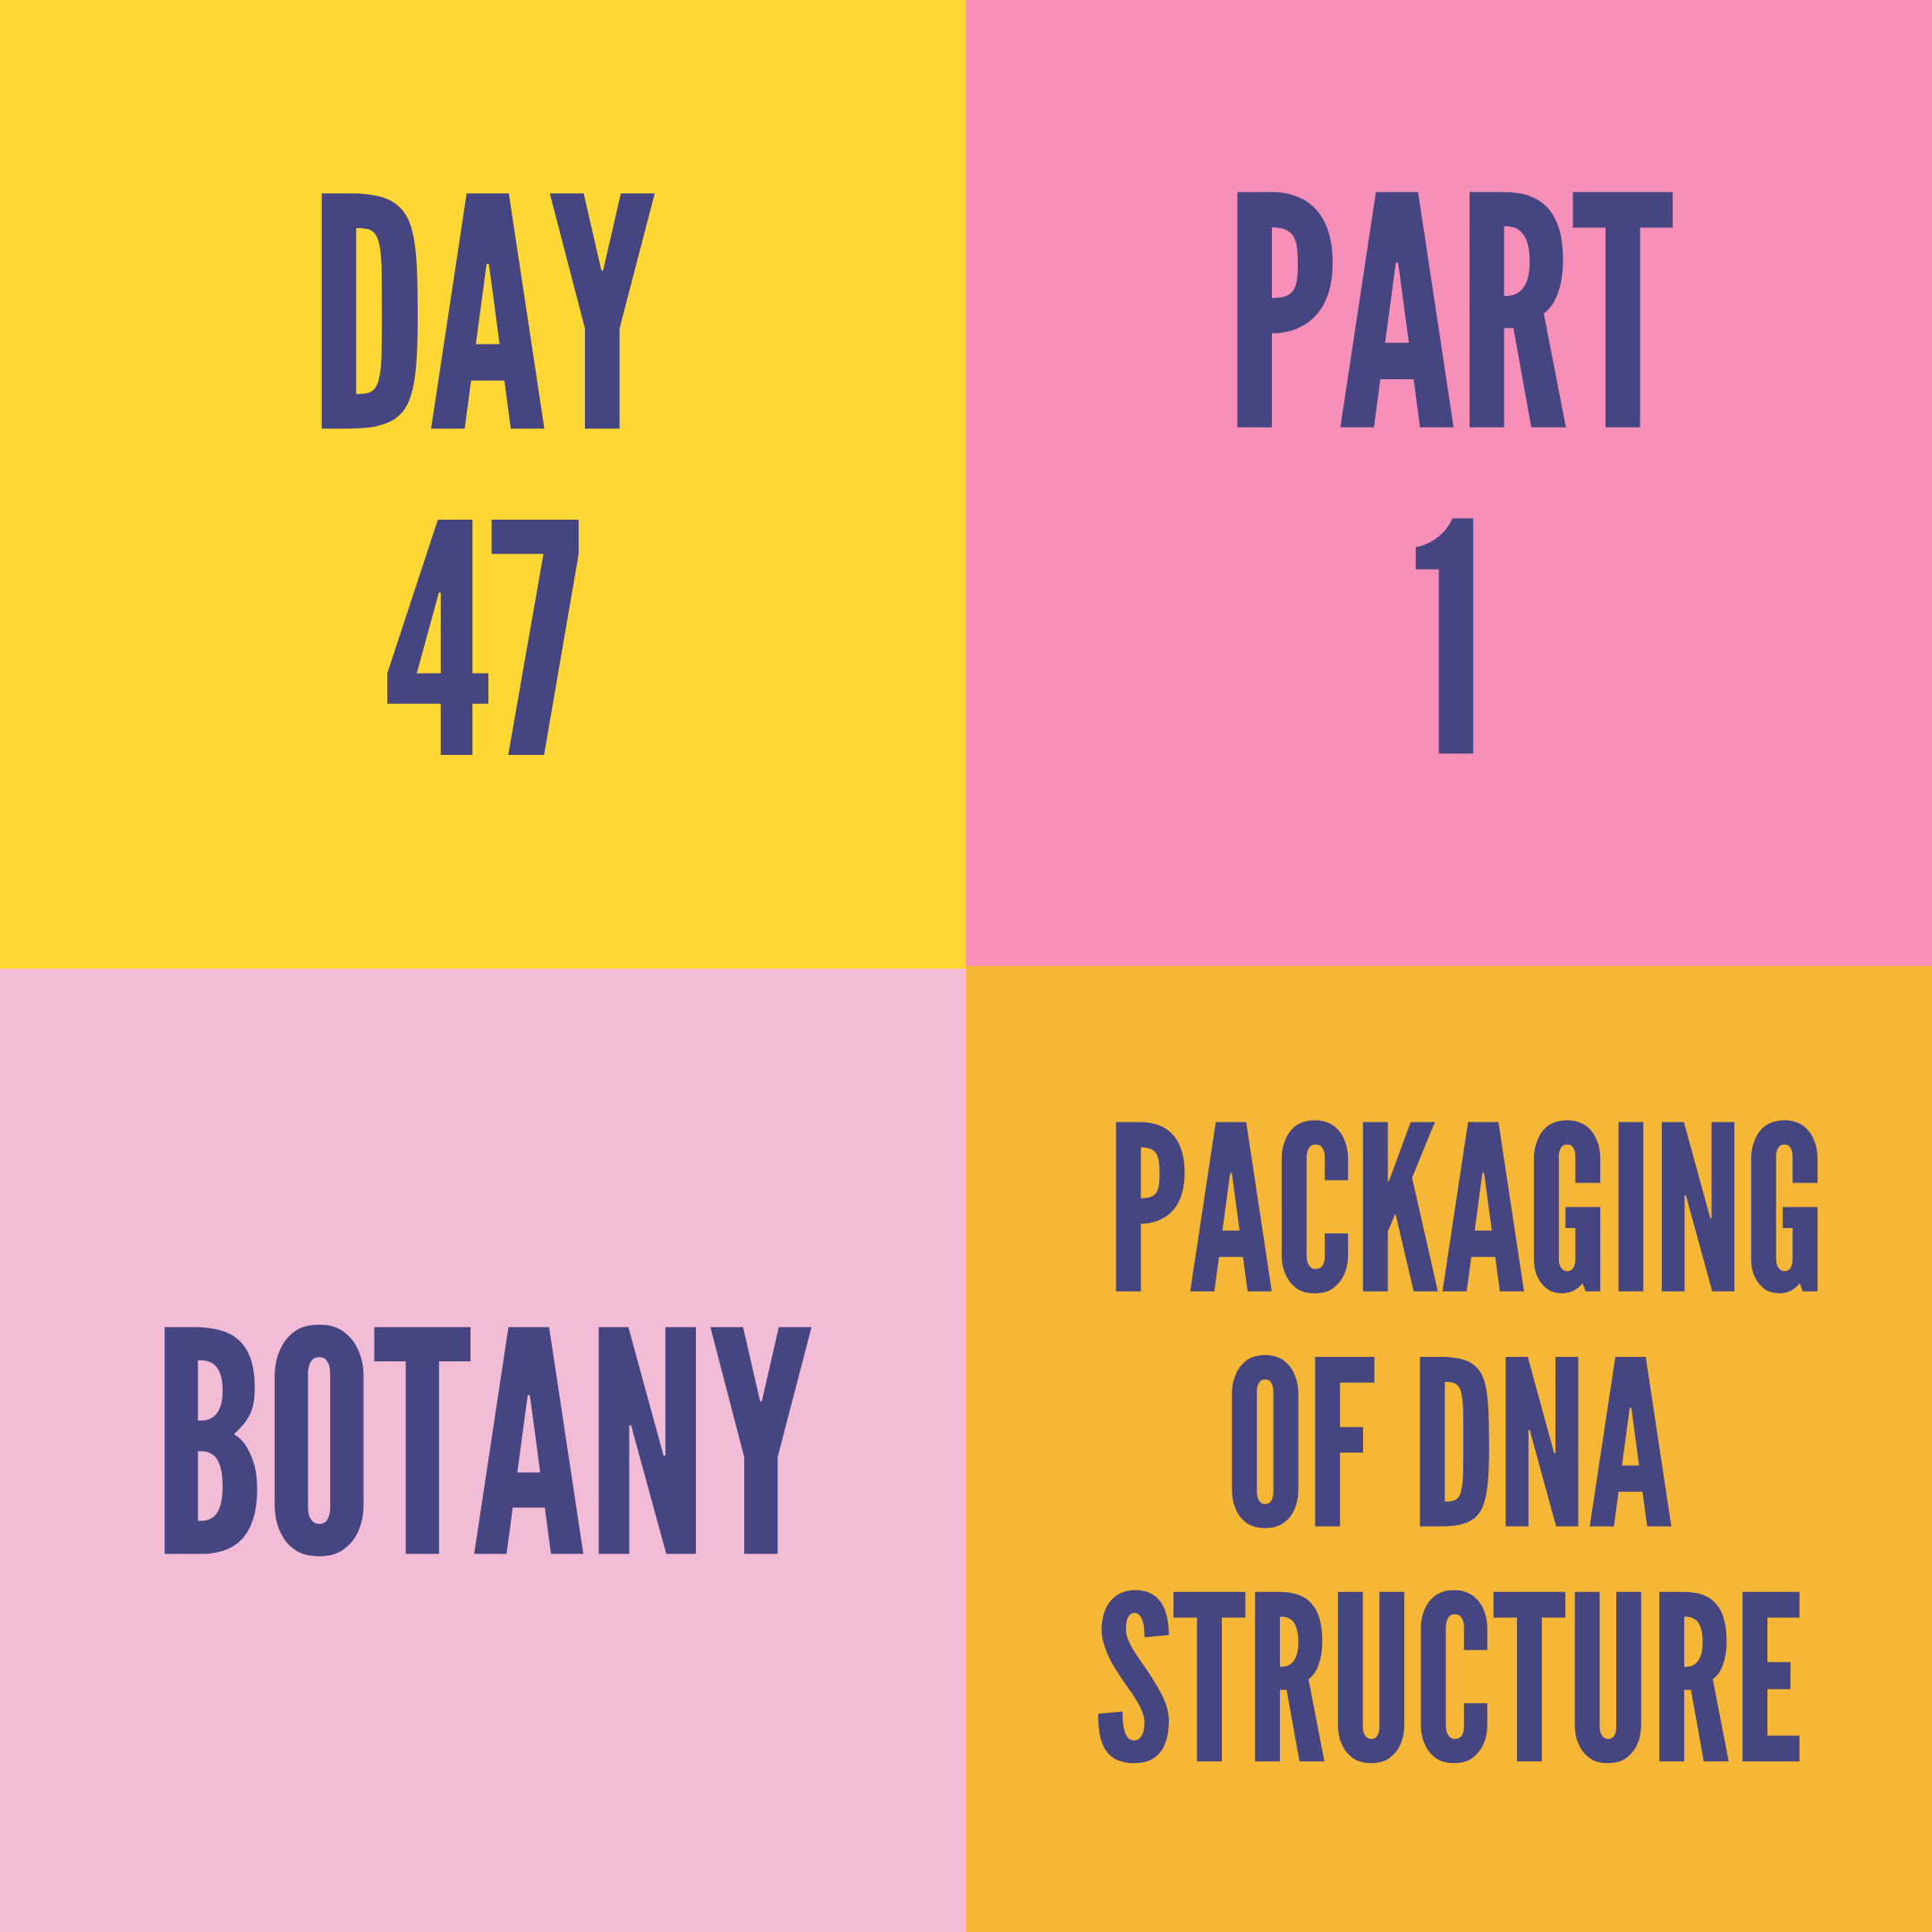 DAY-47 PART-1 PACKAGING OF DNA STRUCTURE